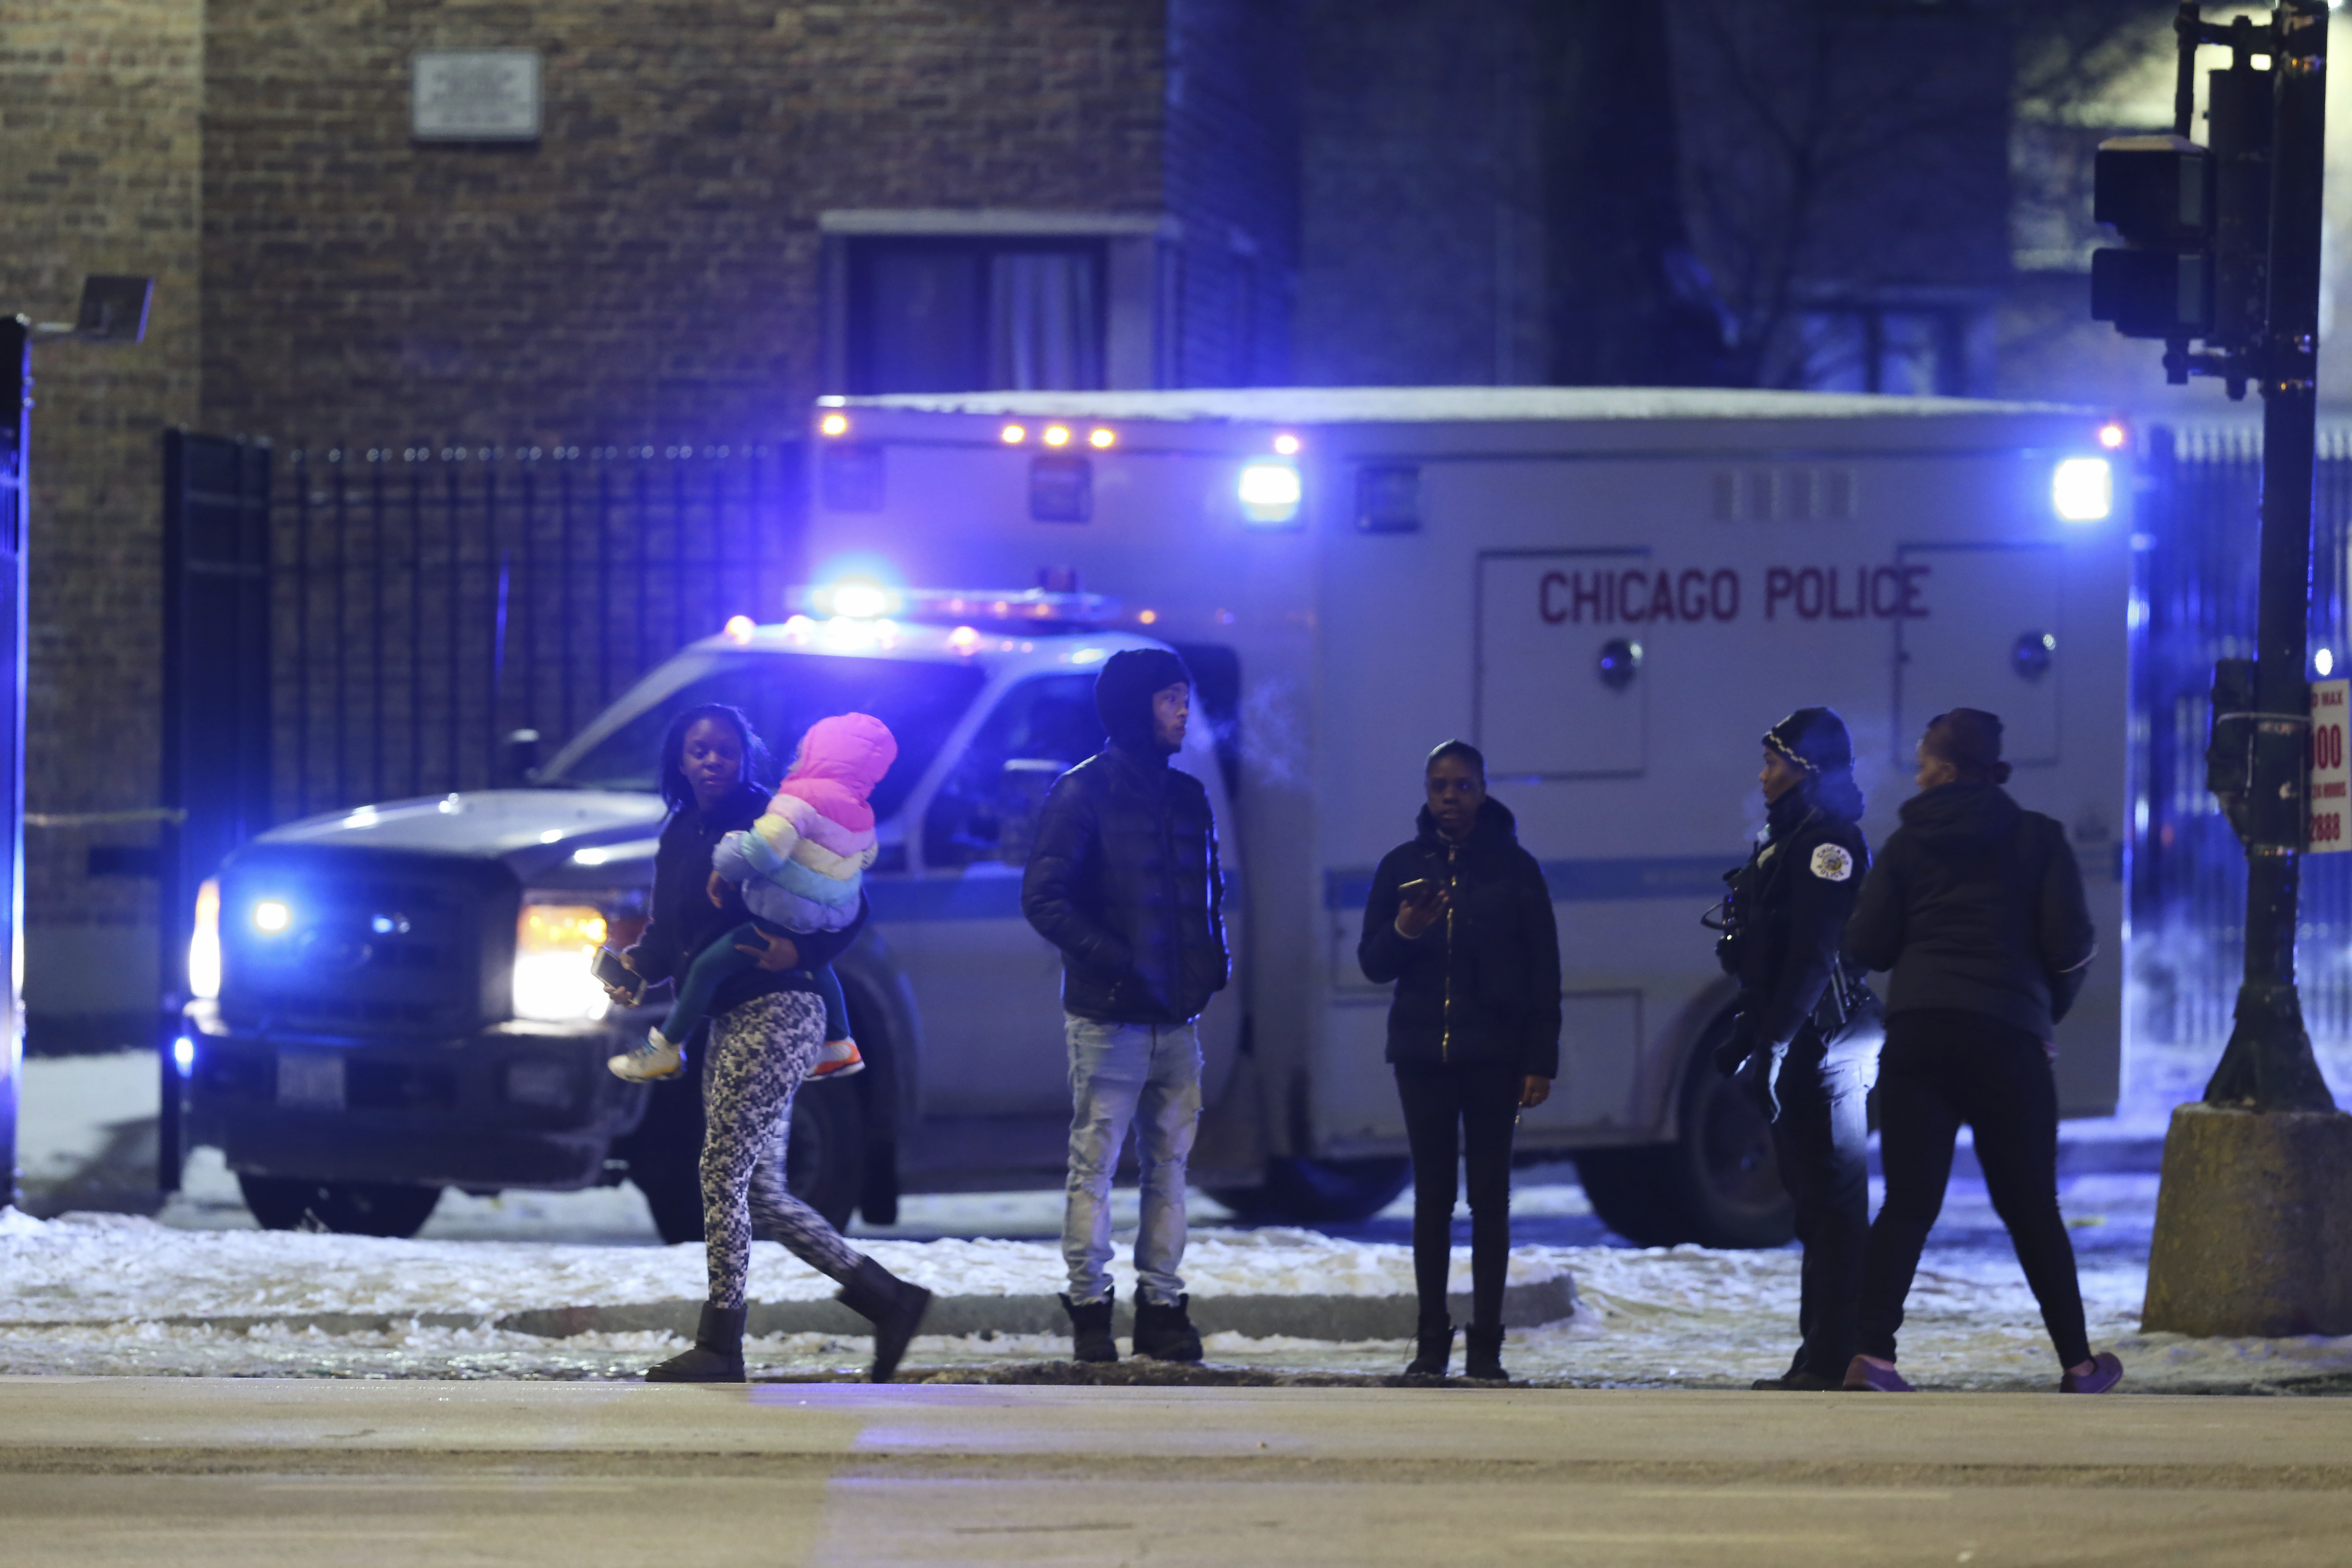 Emergency responders work the scene of a shooting on Feb. 14, 2020 in Chicago. Six people were wounded in the shooting at an apartment complex on Chicago's South Side, police said.